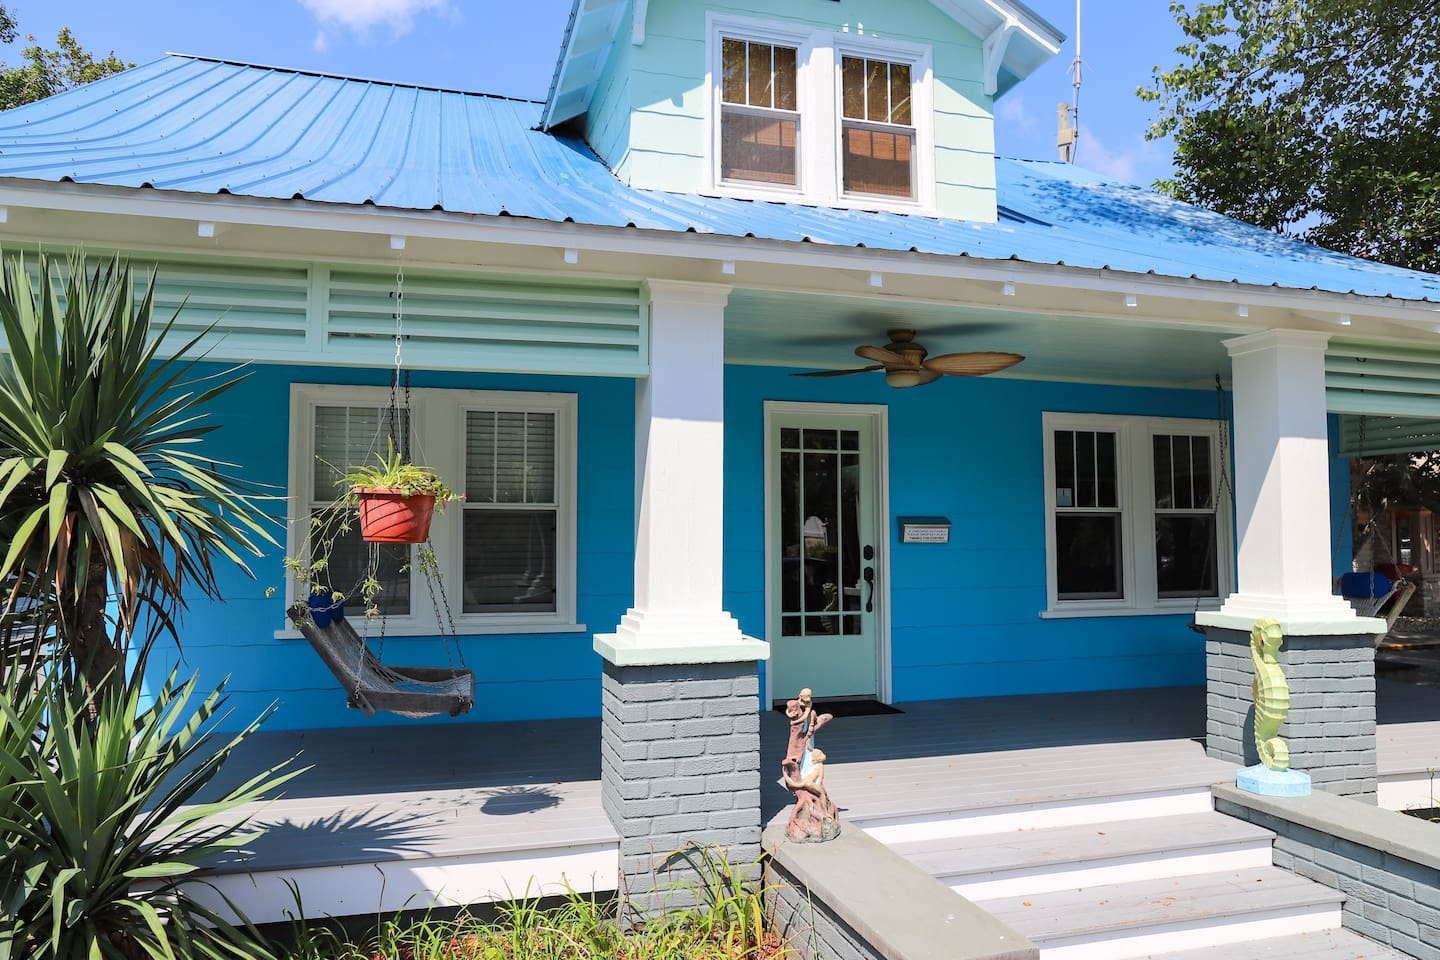 Island Guest House entrance leads to lobby for check-in!